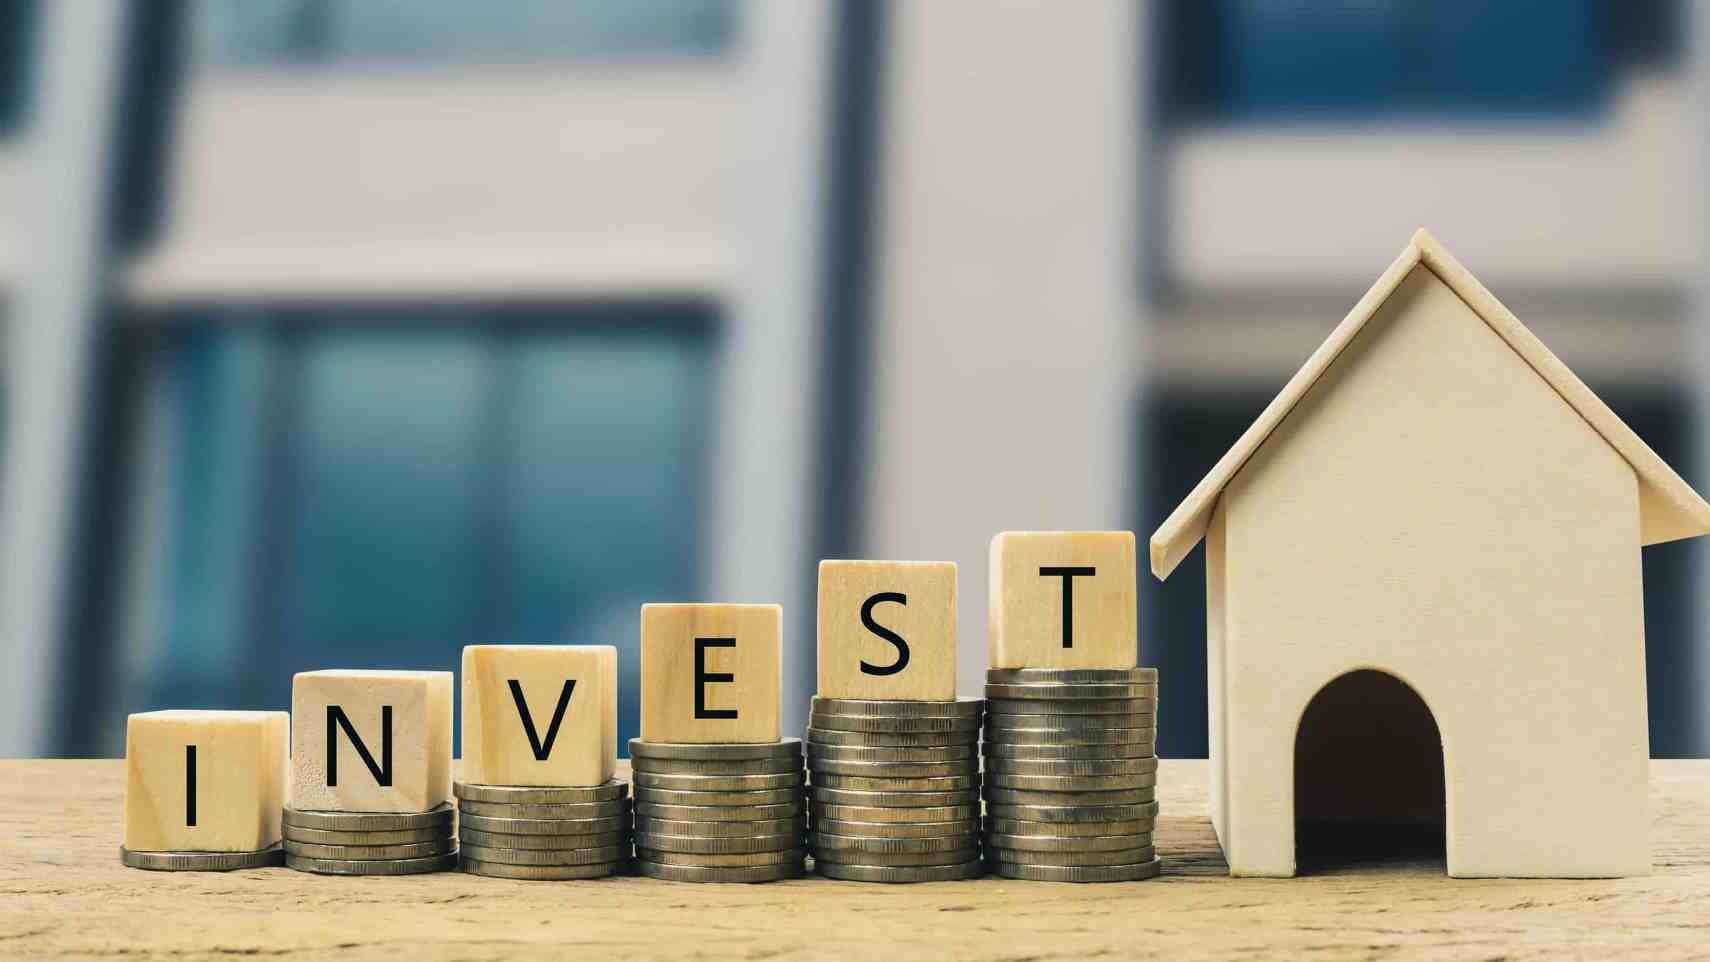 Is real estate the right investment option versus others